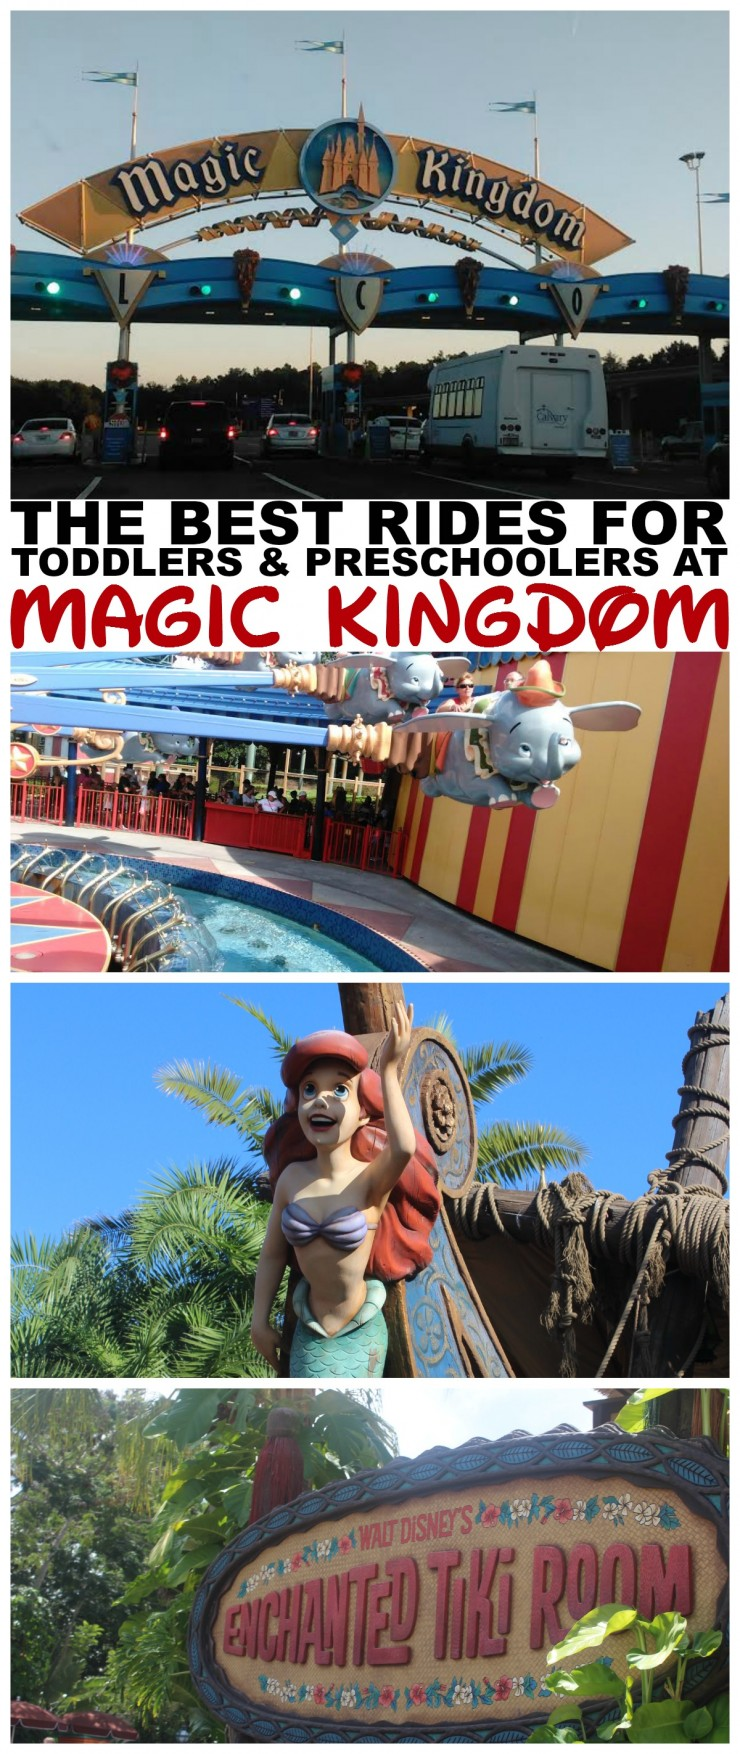 The Best Rides Amp Attractions For Toddlers And Preschoolers At Magic Kingdom Frugal Mom Eh